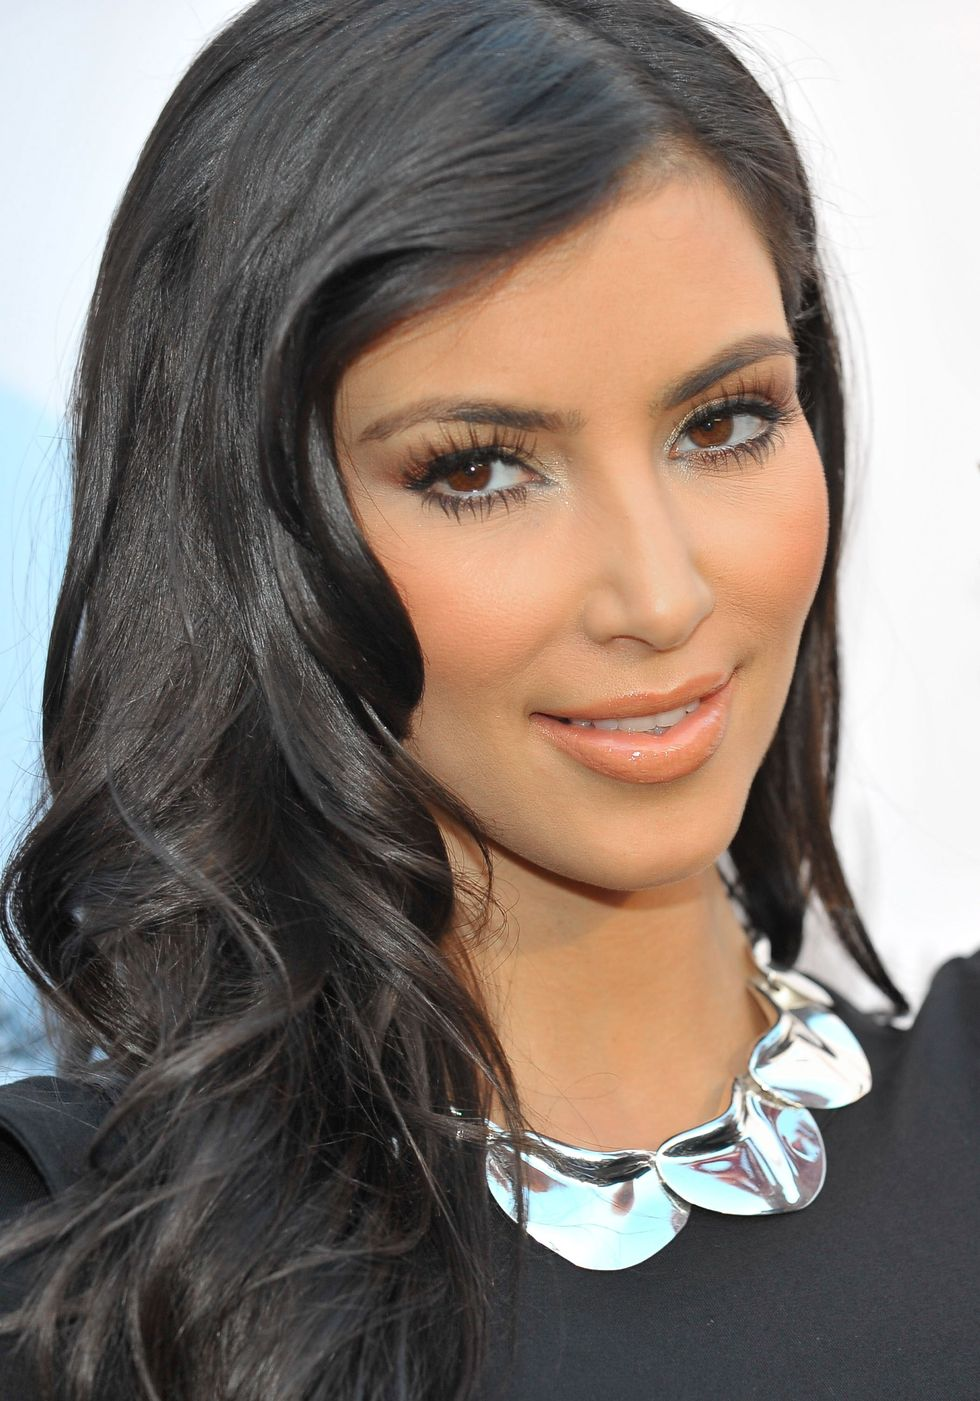 kim-kardashian-aces-angels-celebrity-poker-party-in-beverly-hills-01